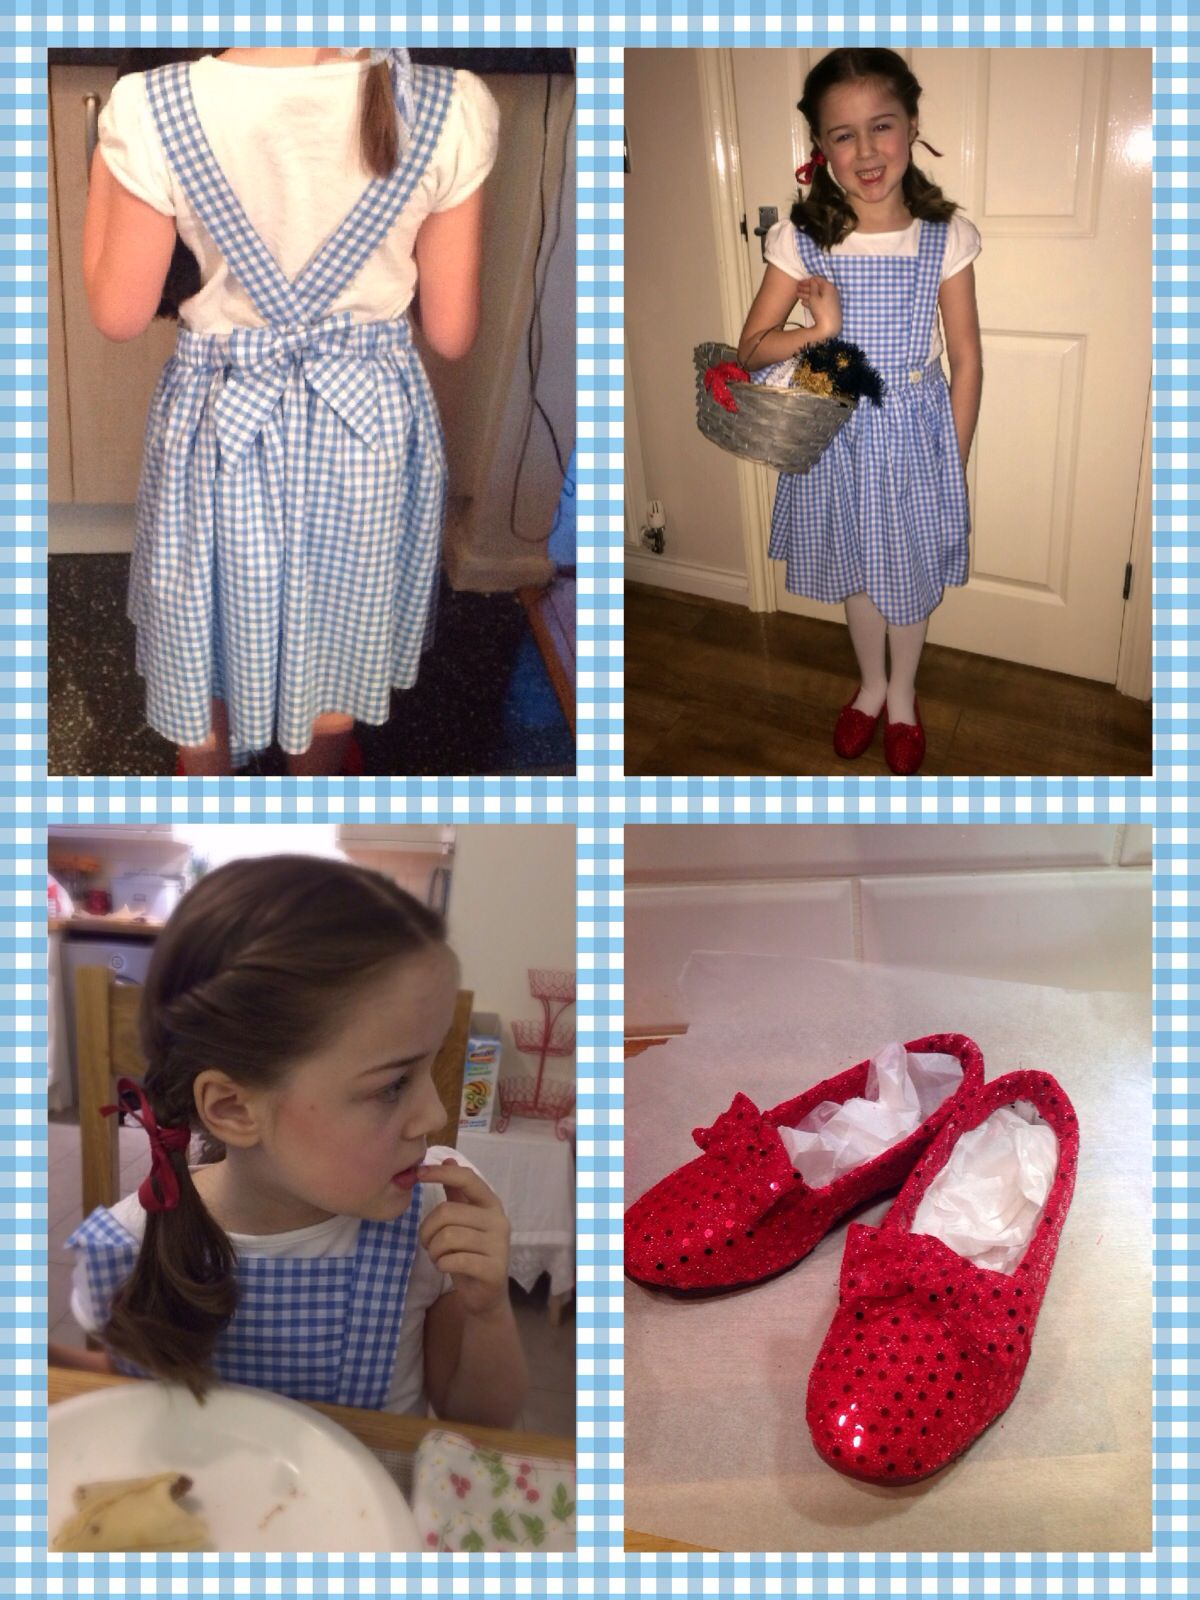 Wizard of oz dorothy homemade world book day fancy dress costume wizard of oz dorothy homemade world book day fancy dress costume solutioingenieria Images